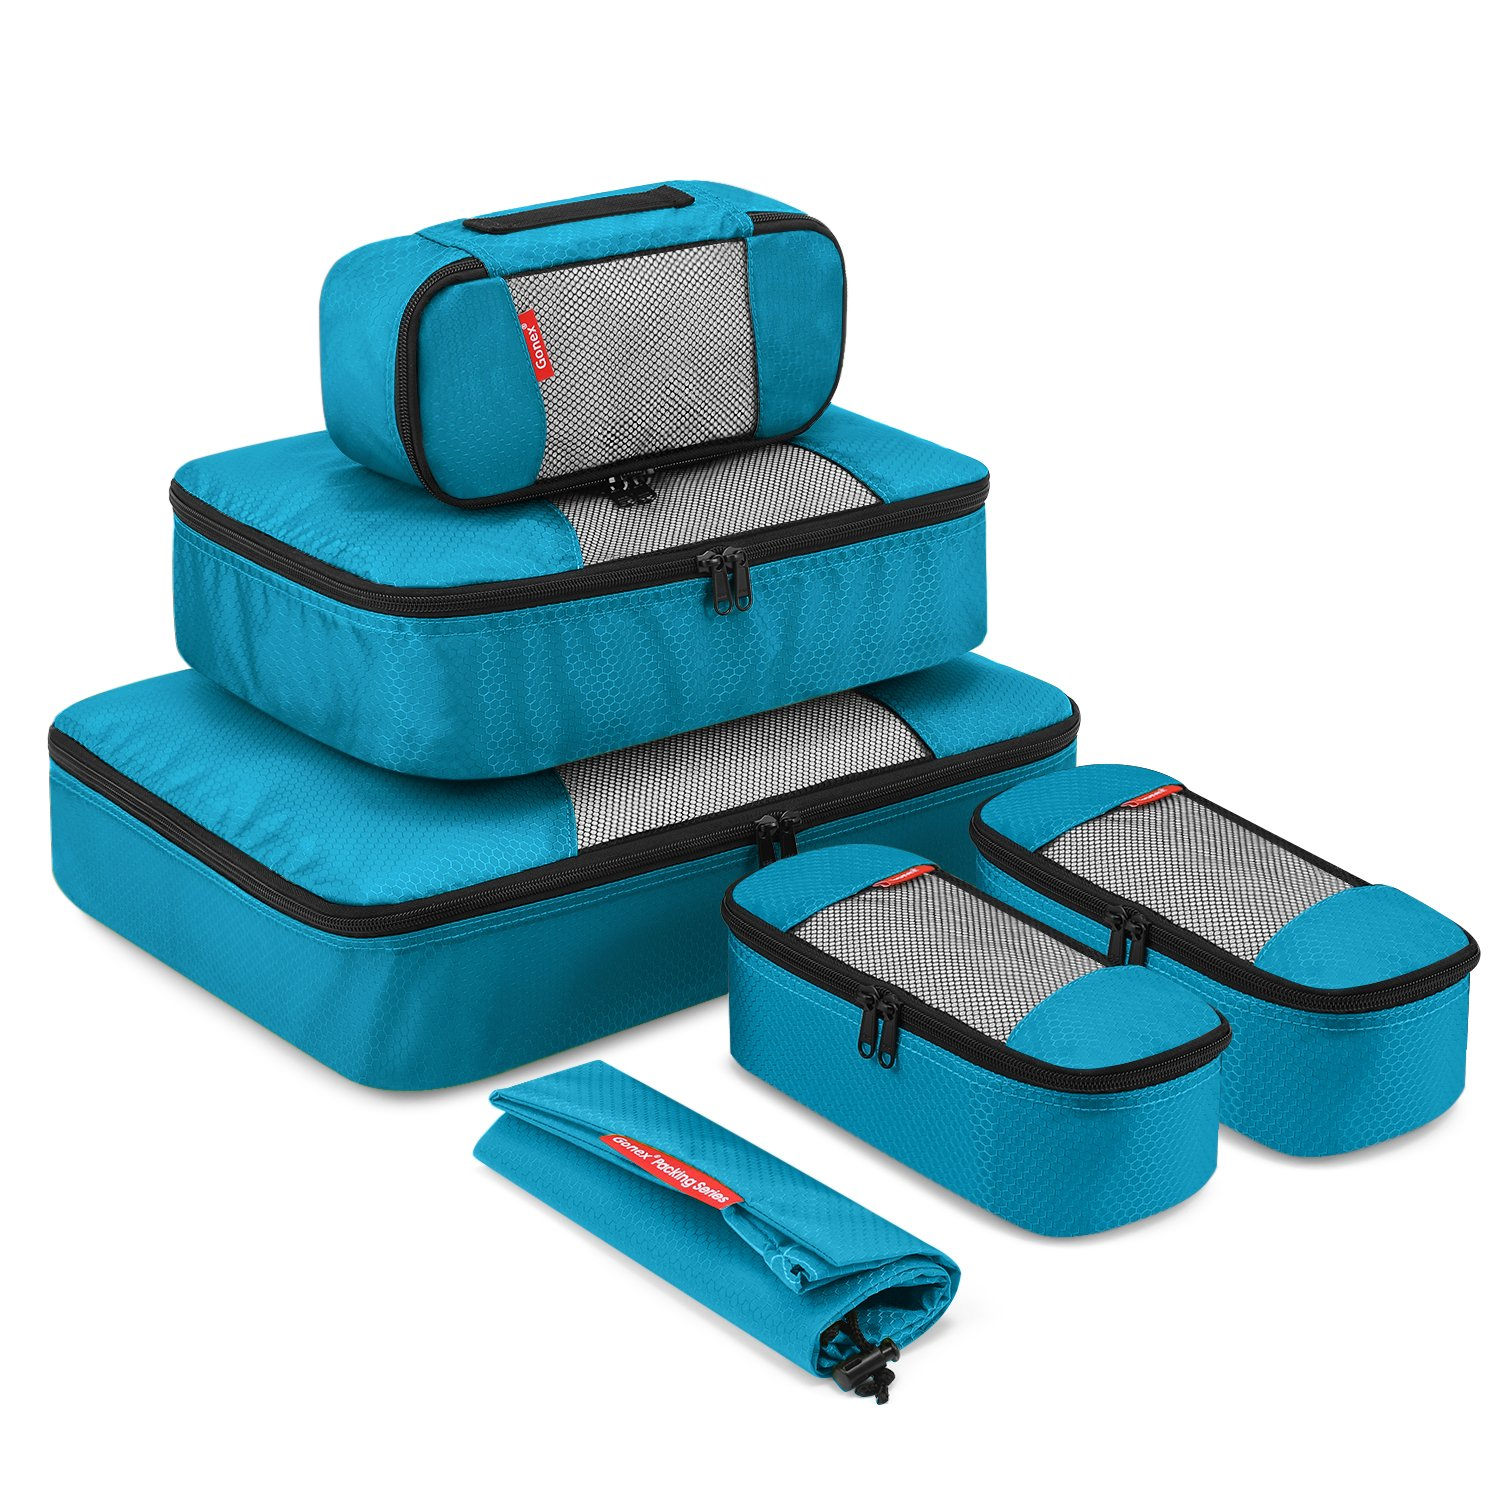 Gonex Packing Cubes Luggage Travel Organizers L+M+3XS+Shoe Bag Blue product image